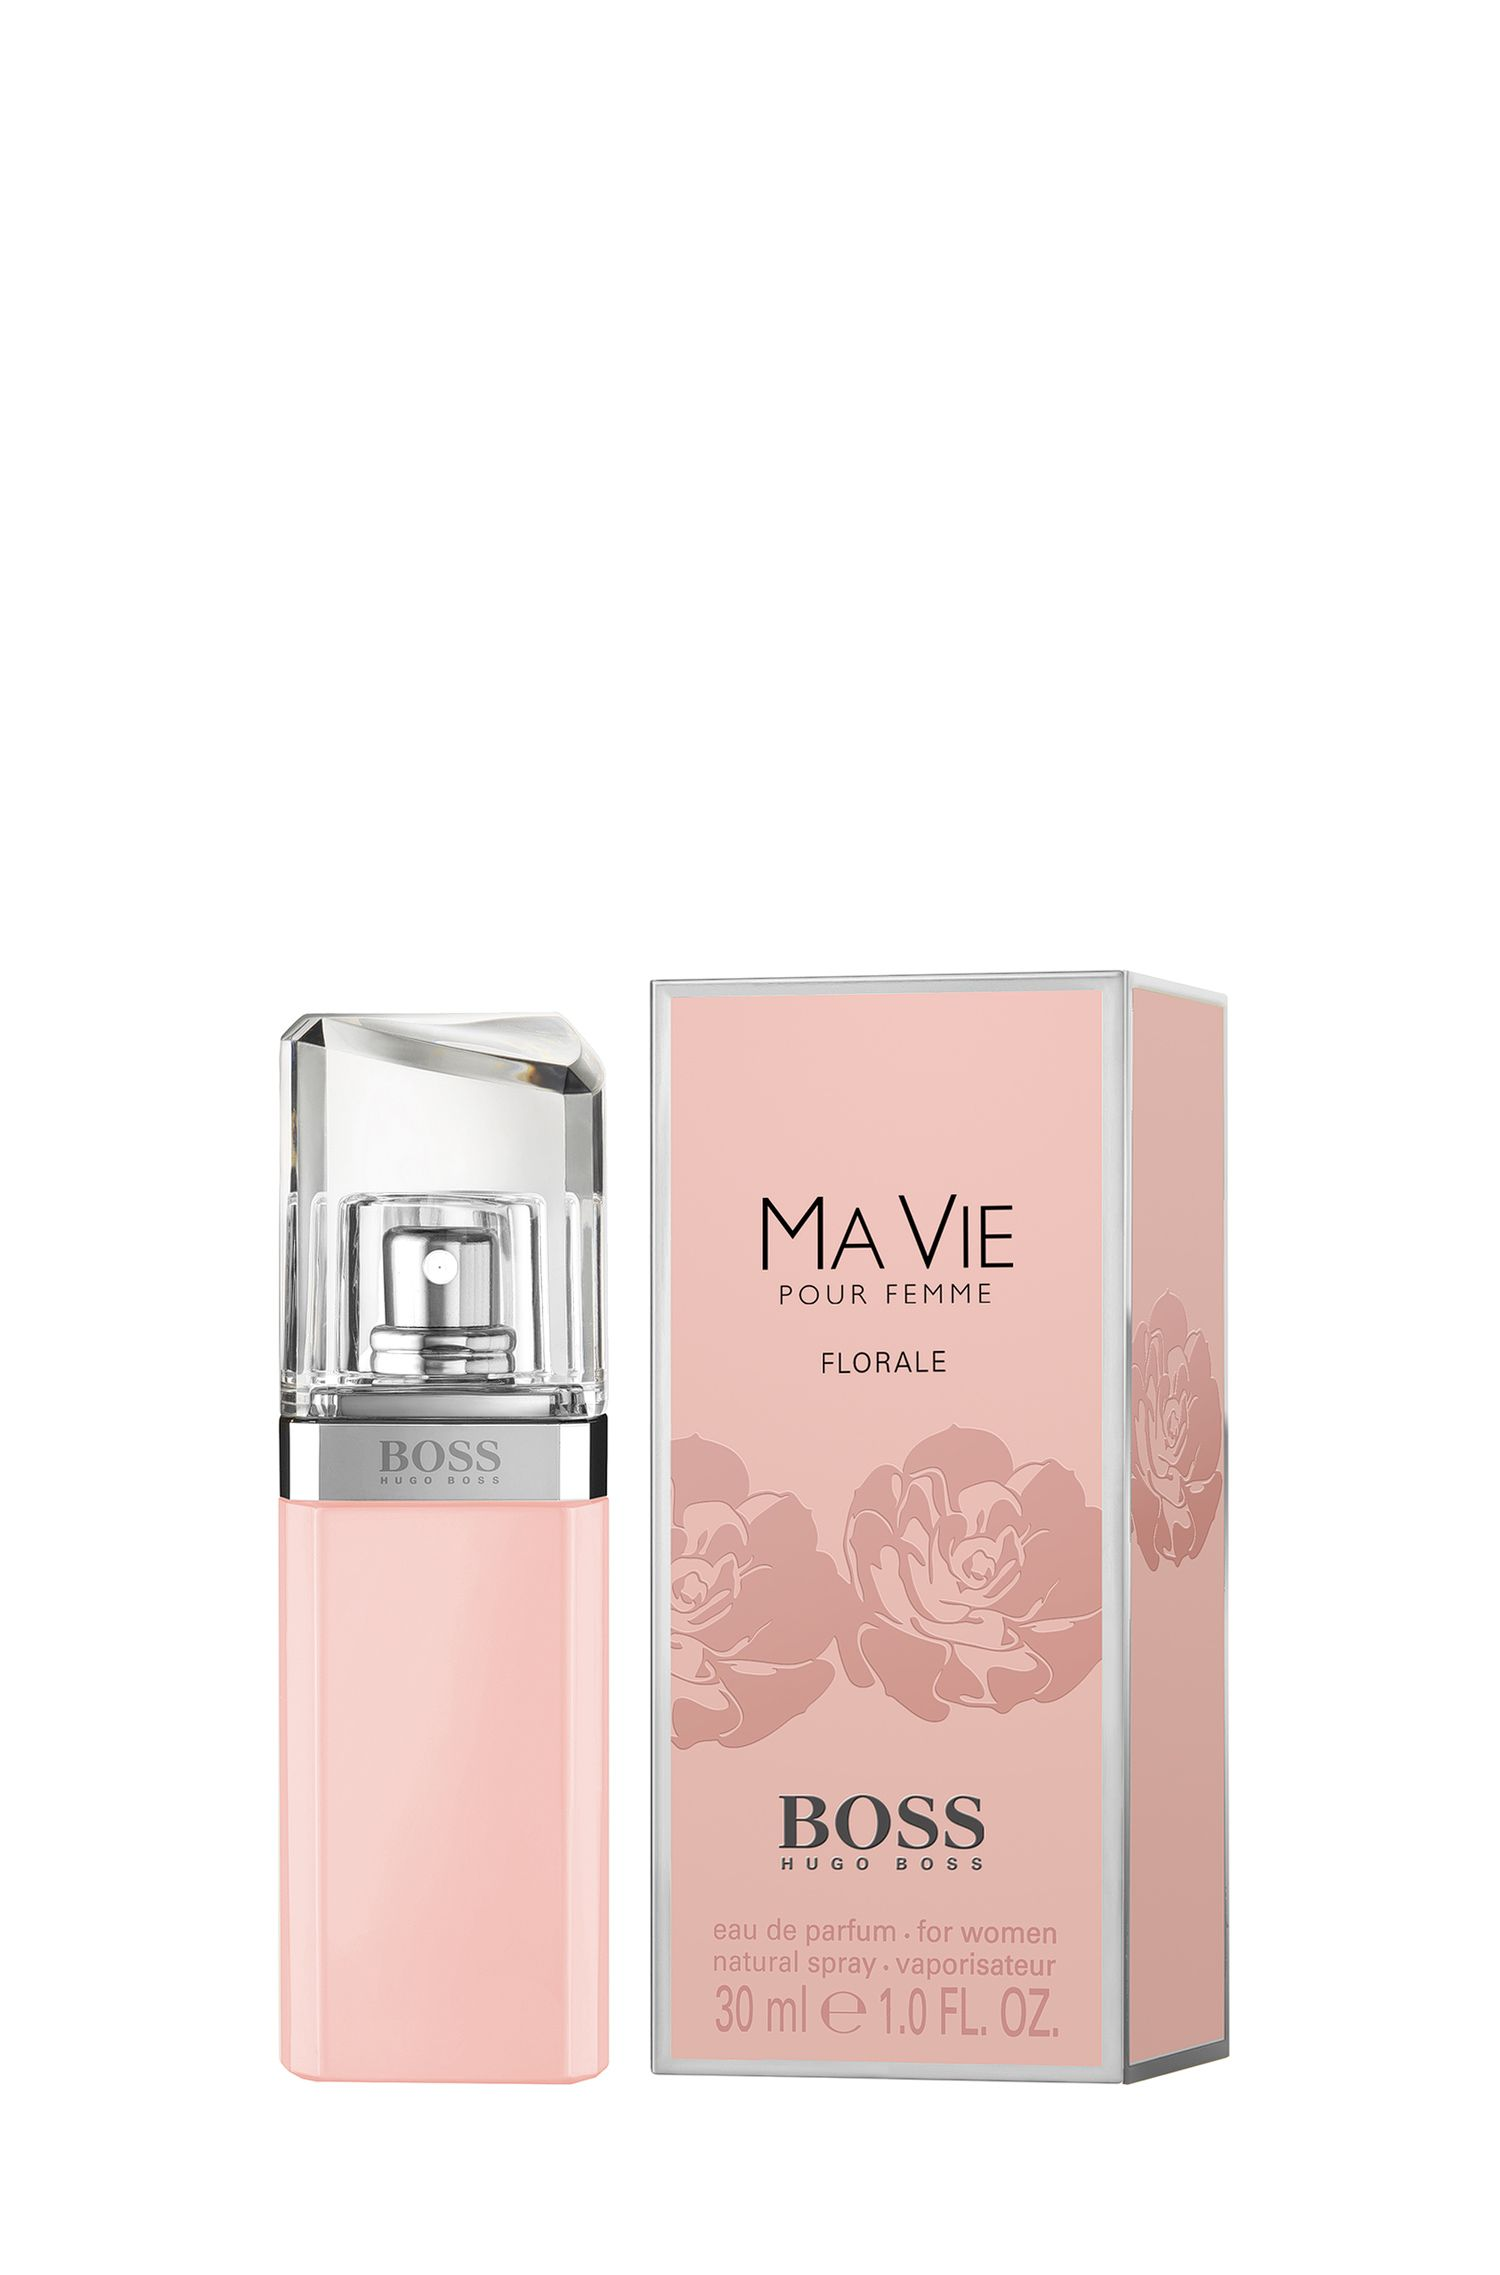 BOSS Ma Vie Florale eau de parfum 30ml, Assorted-Pre-Pack